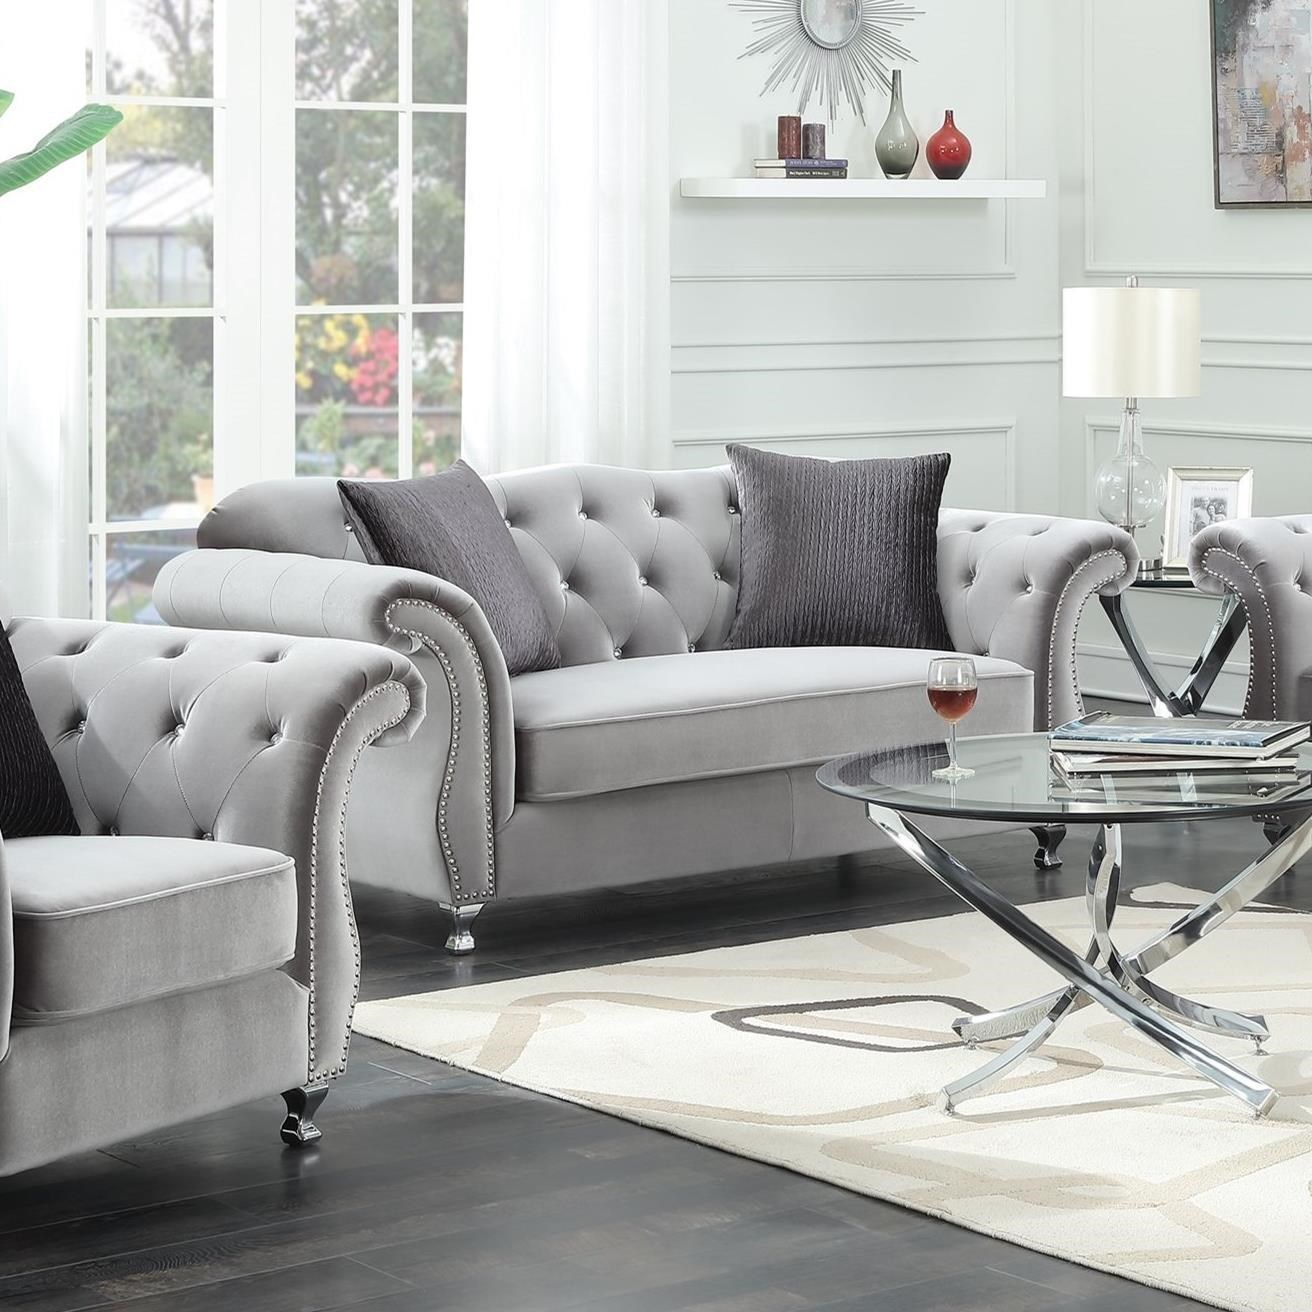 Online Couches: Coaster Frostine Glamorous Loveseat With Tufted Side Frame